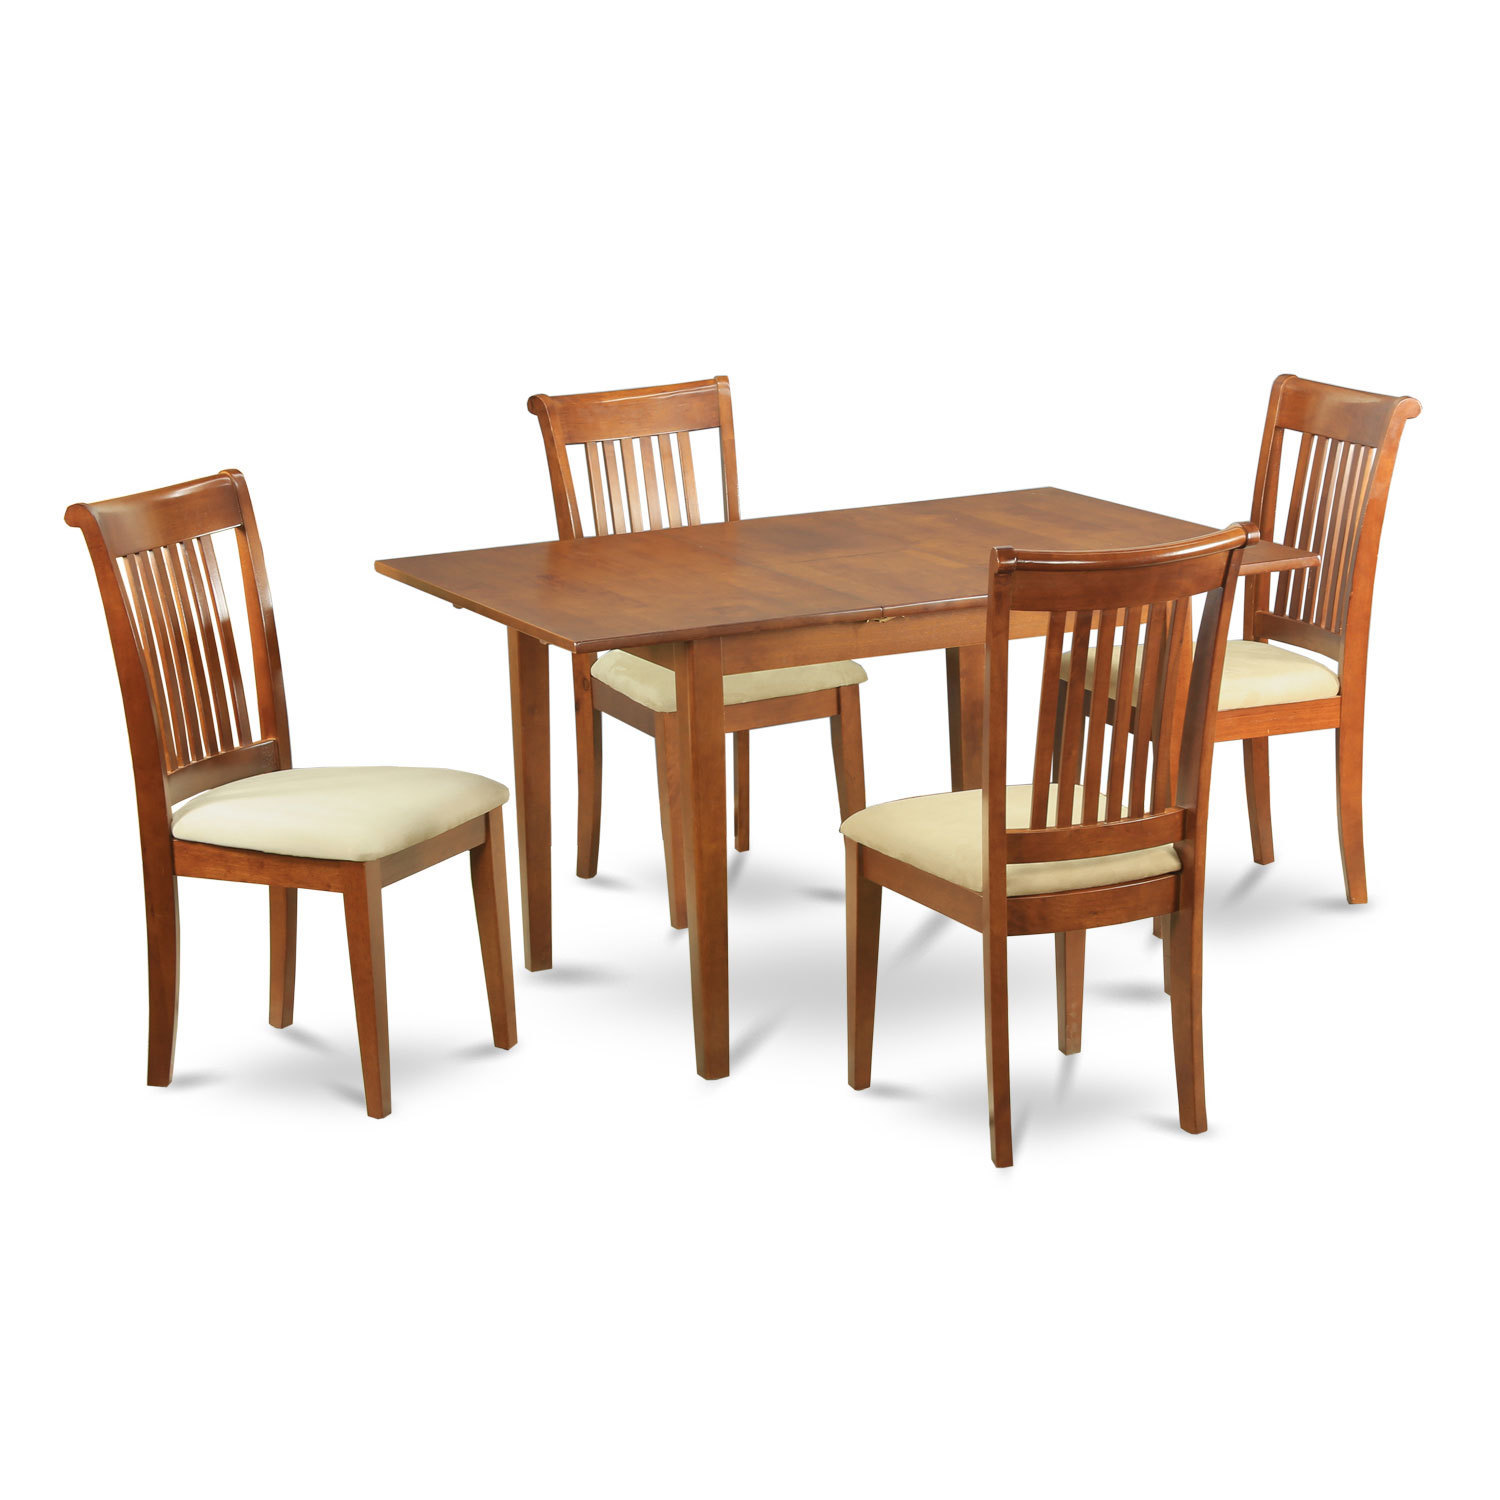 Small dinette set design homesfeed for Small dinner table and chairs